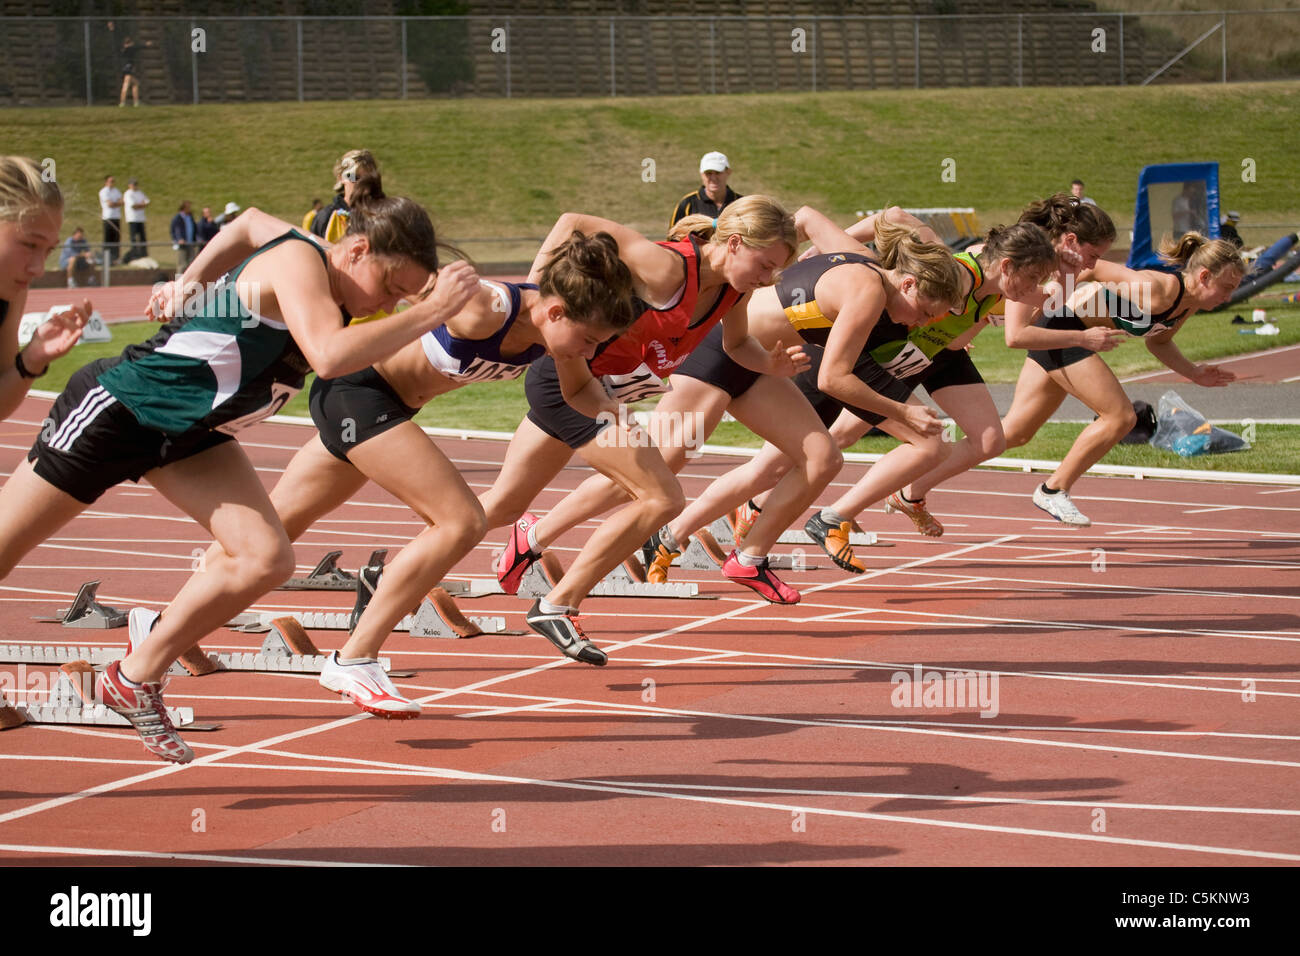 A row of girls at the start of a sprint race on a running track, Wellington, New Zealand - Stock Image